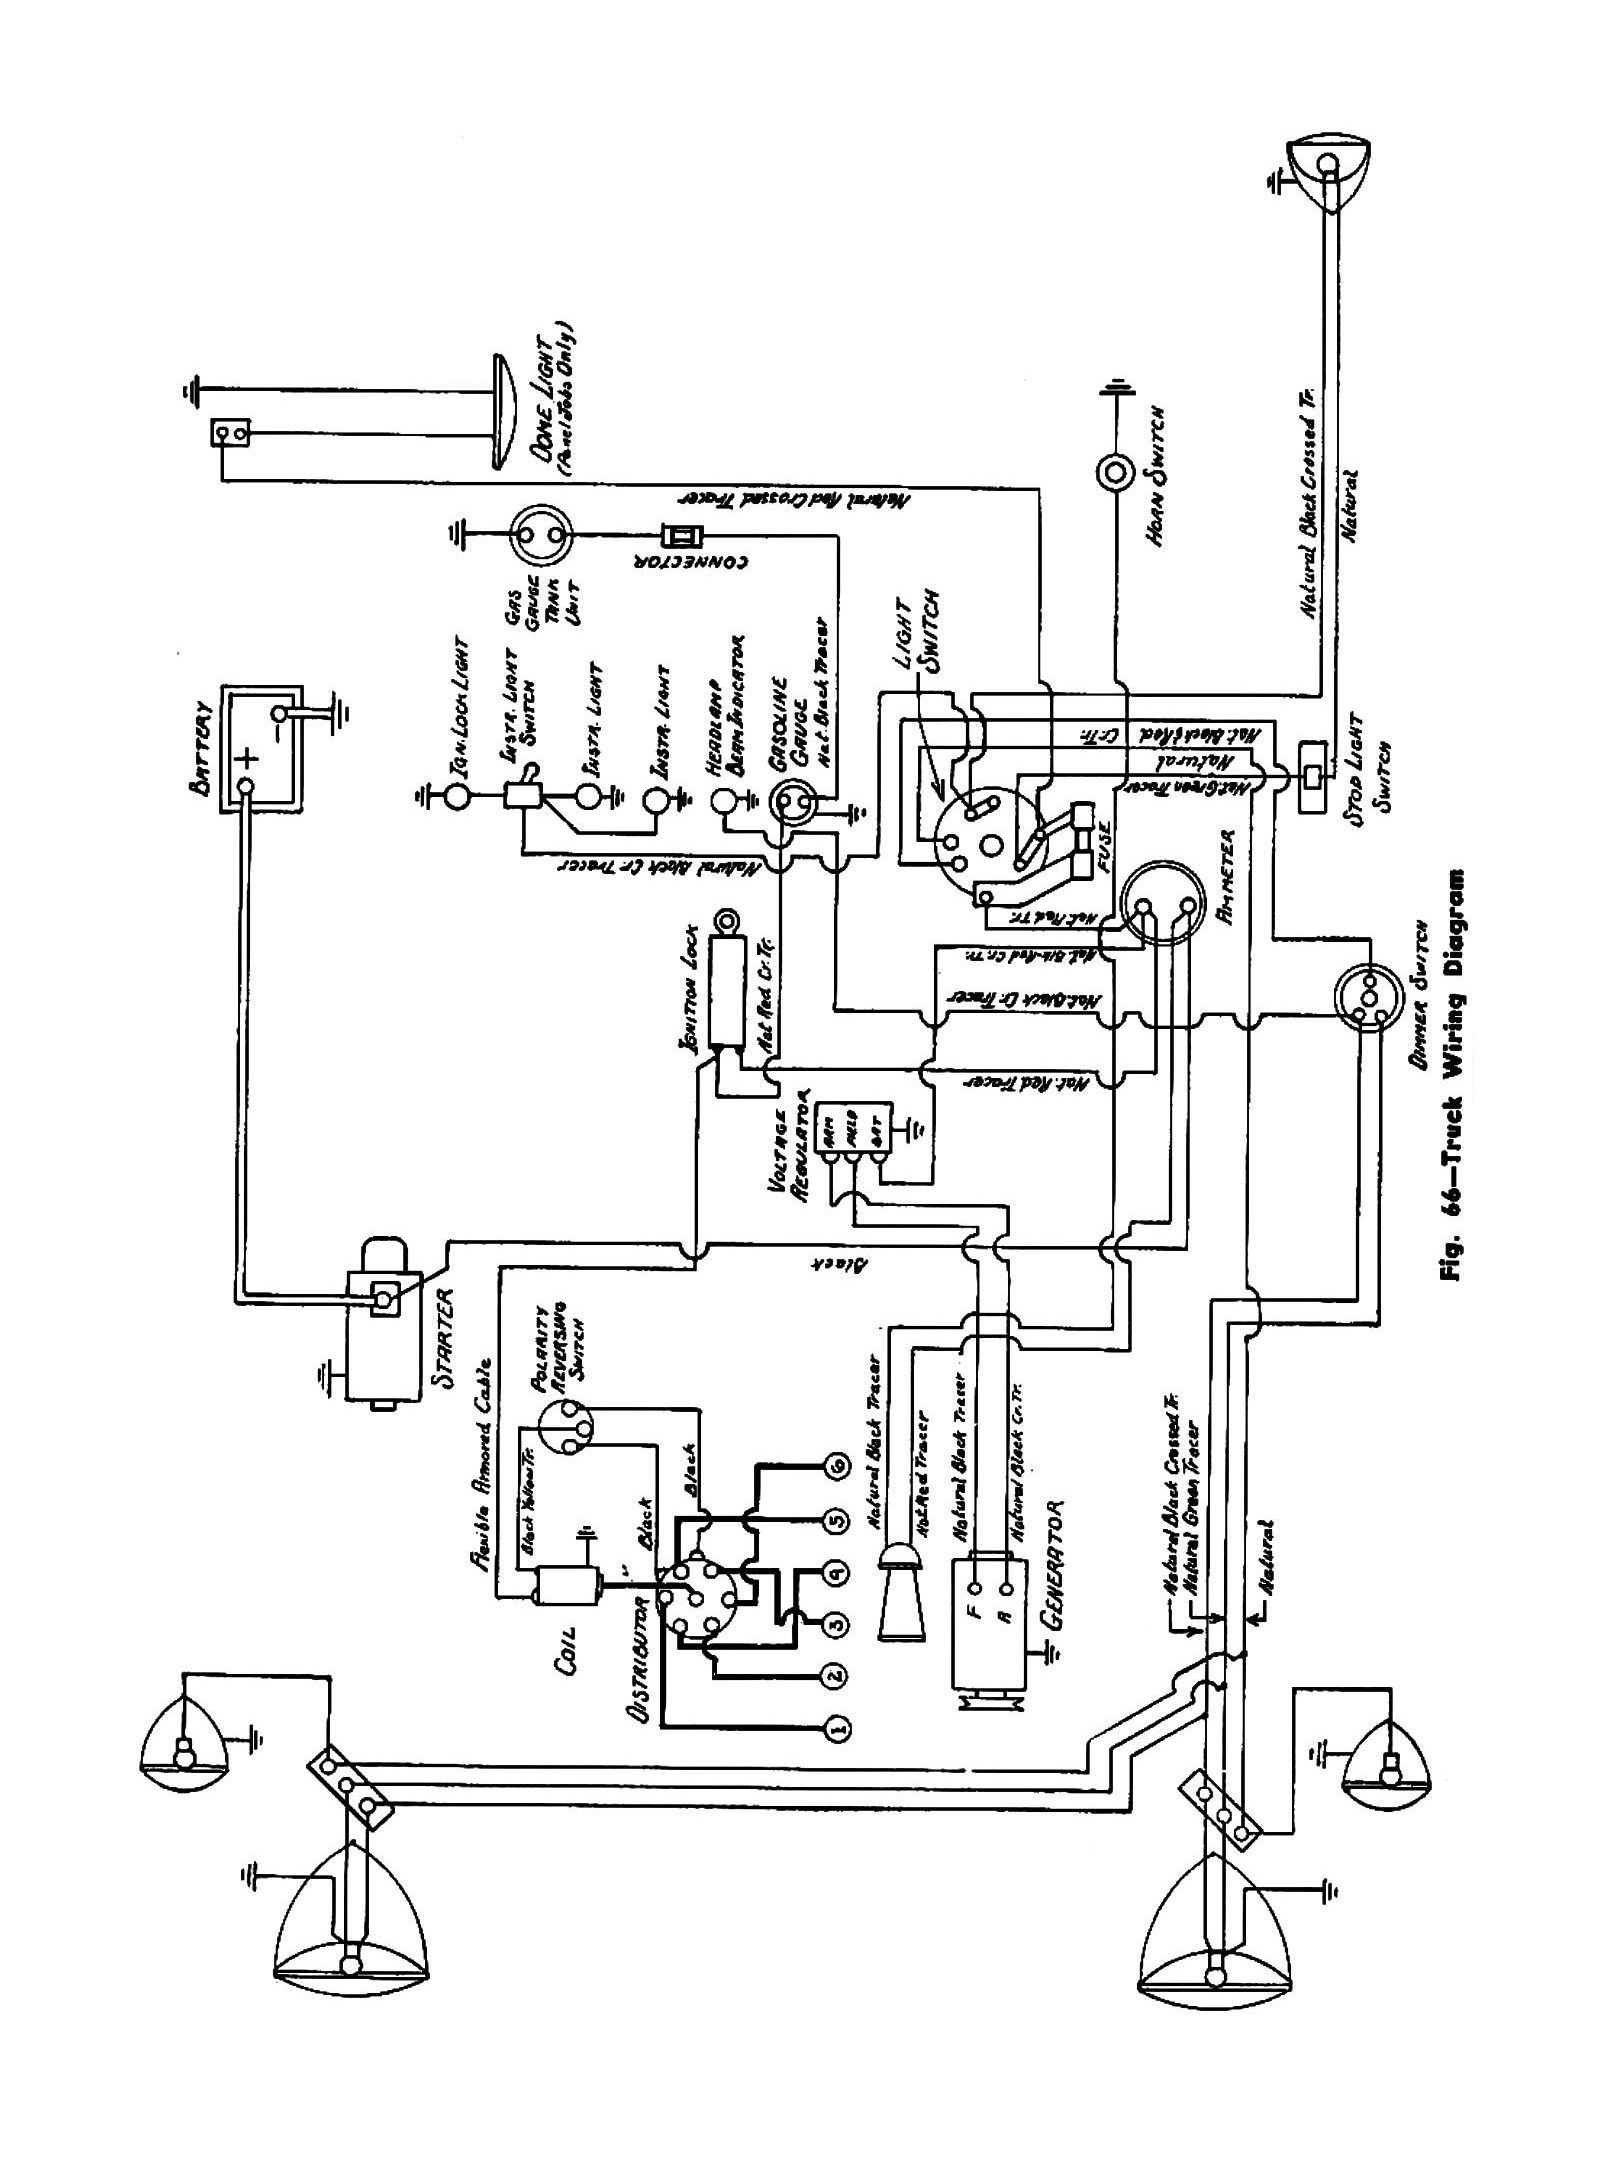 hight resolution of 1953 dodge wiring diagram wiring diagram yer 1953 dodge truck wiring diagram 1952 dodge truck wiring